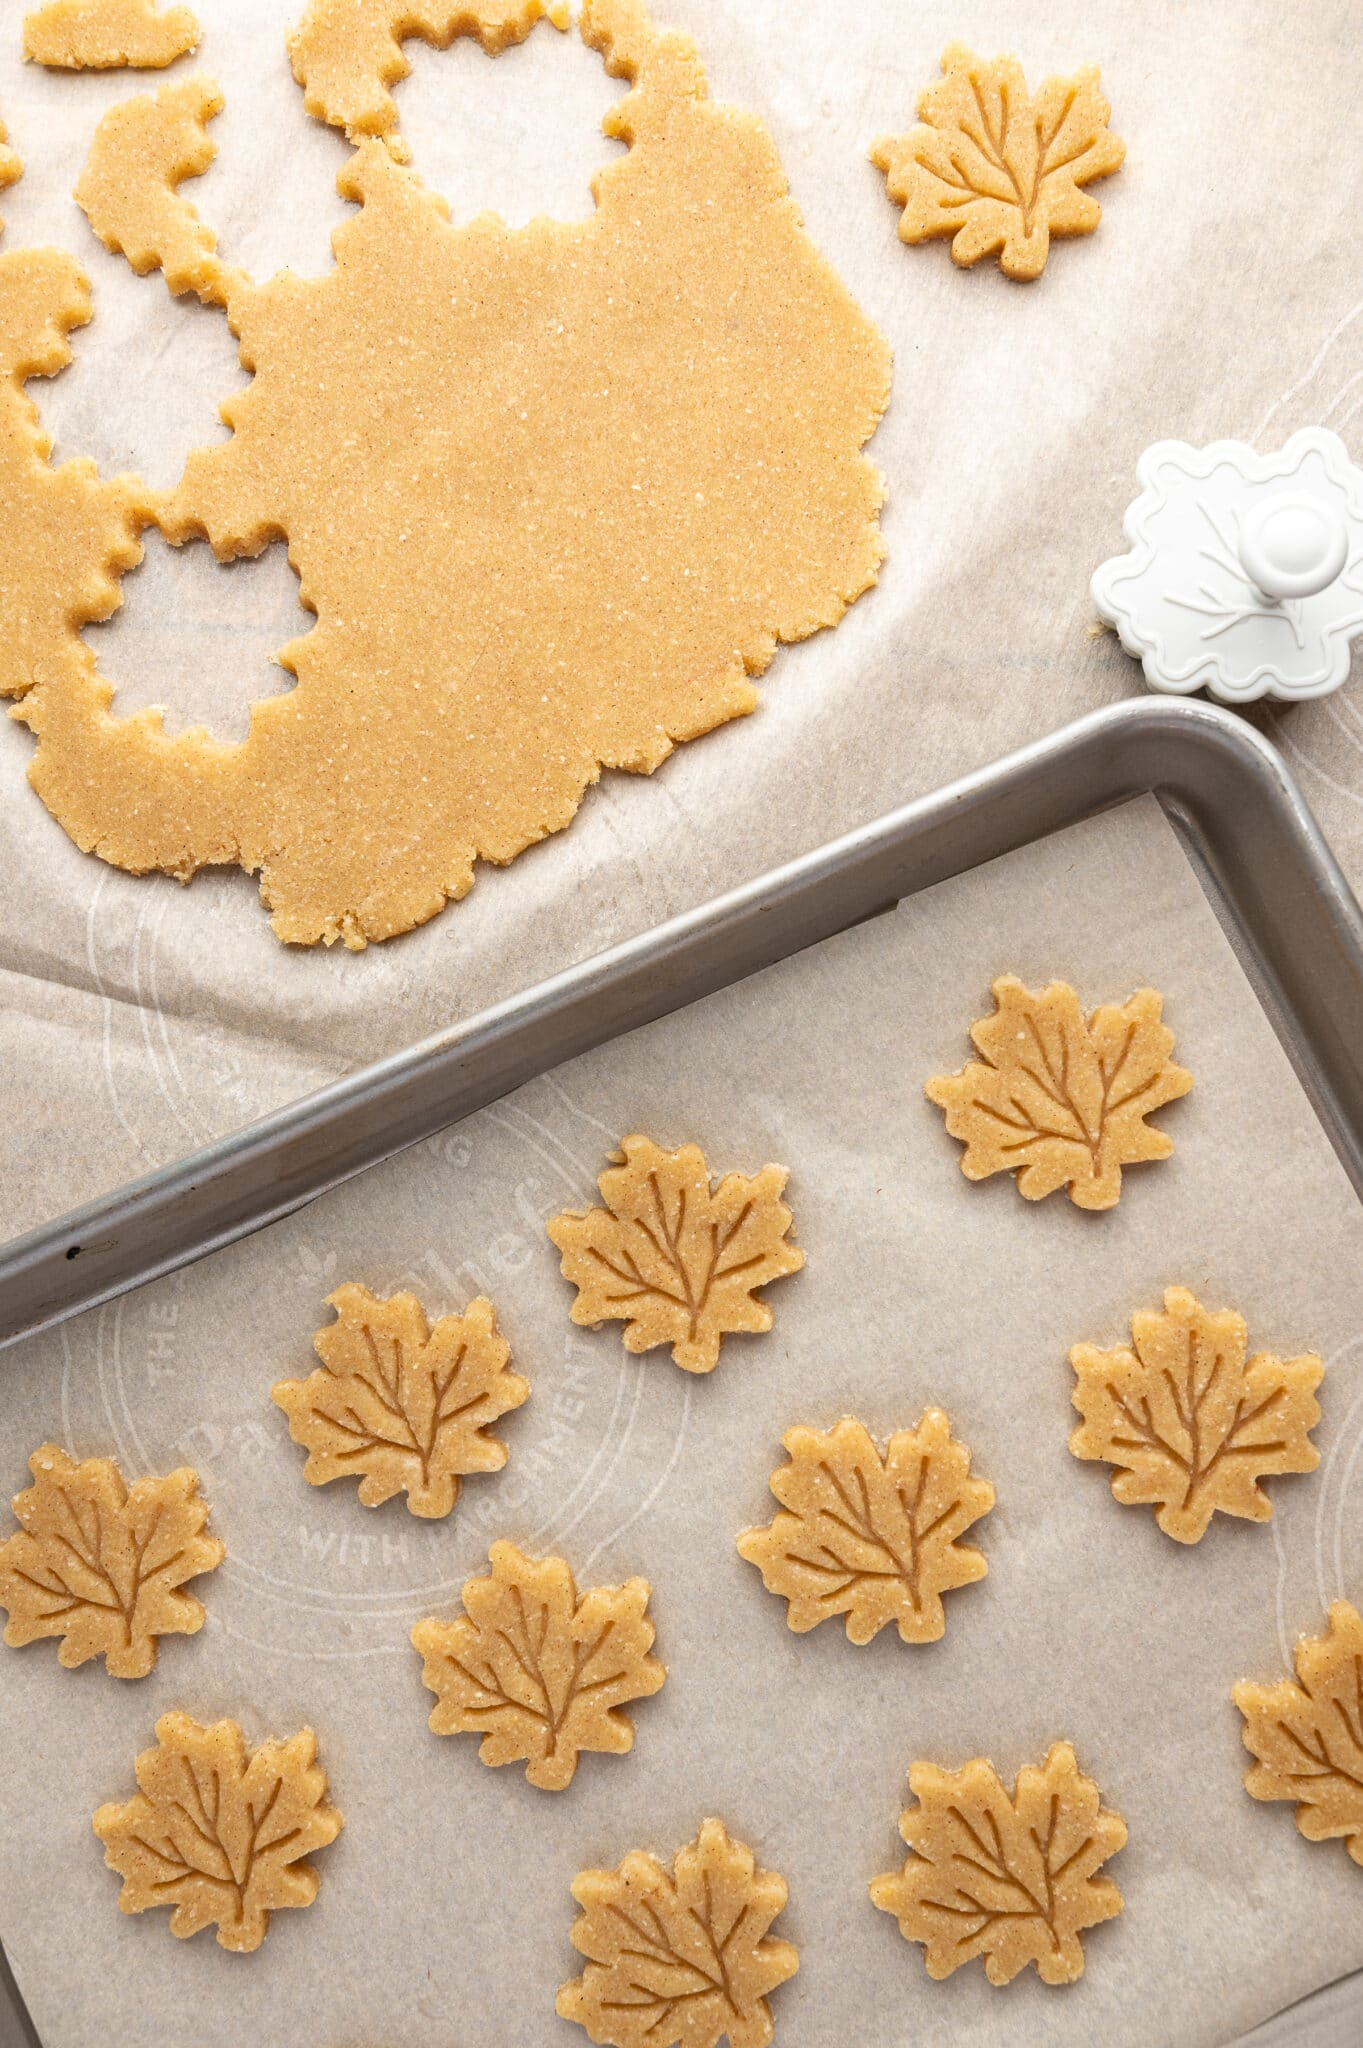 Cookie tray of unbaked maple leaf shaped pie decorations